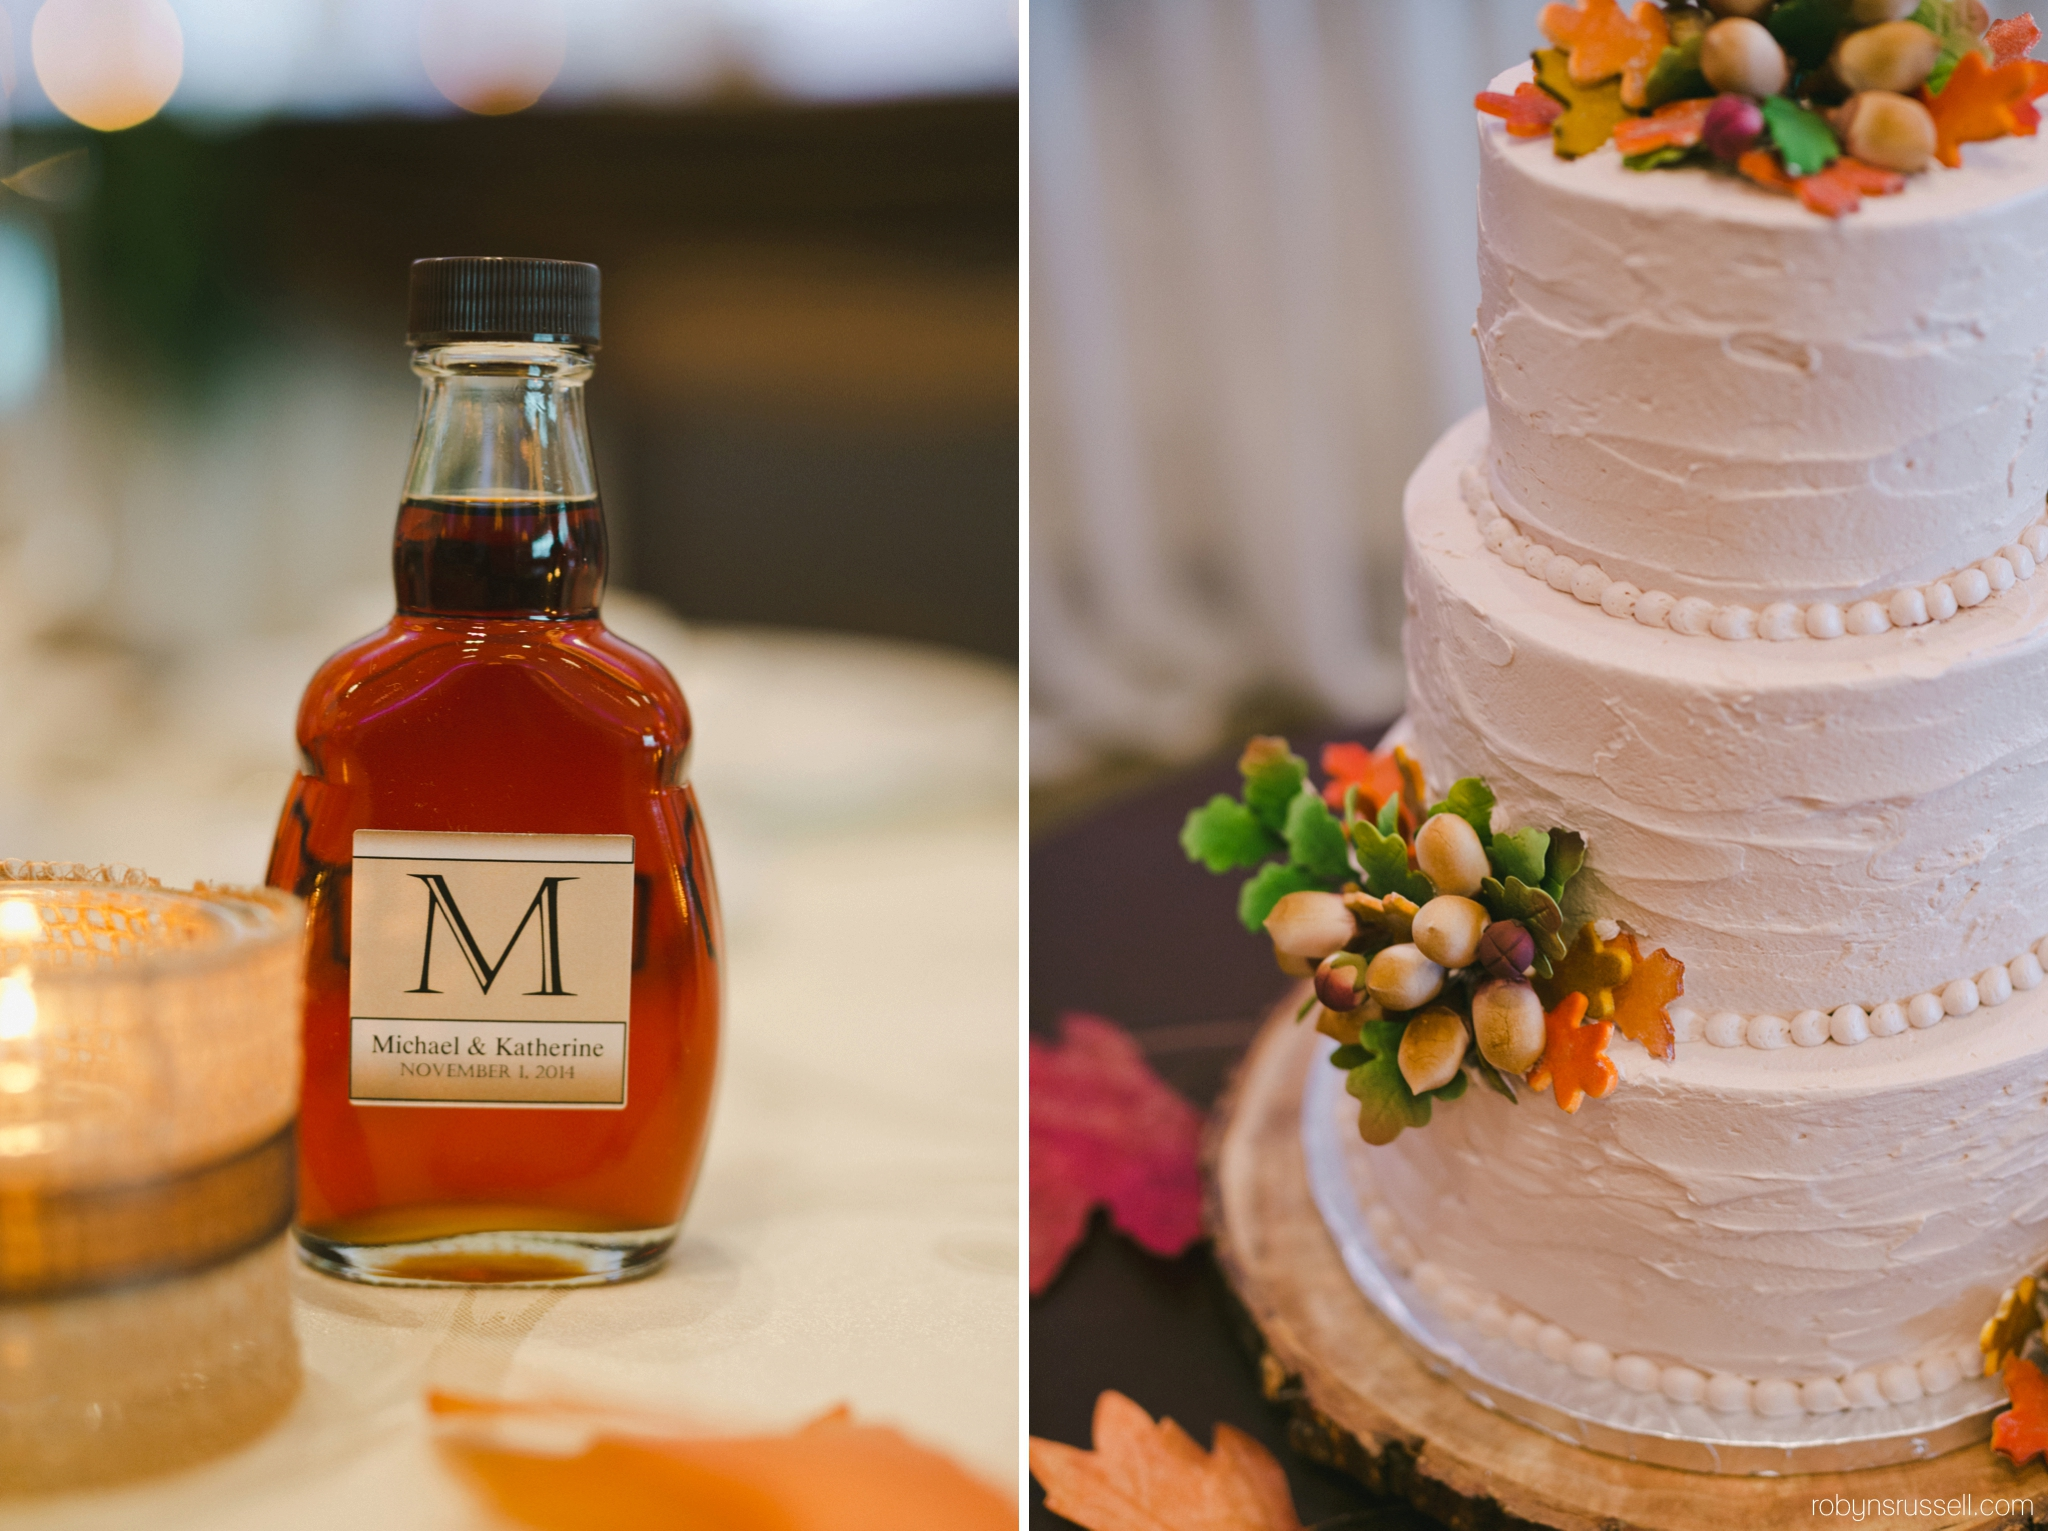 46-bridal-cake-flowers-fall-inspired-maple-syrup-gifts.jpg